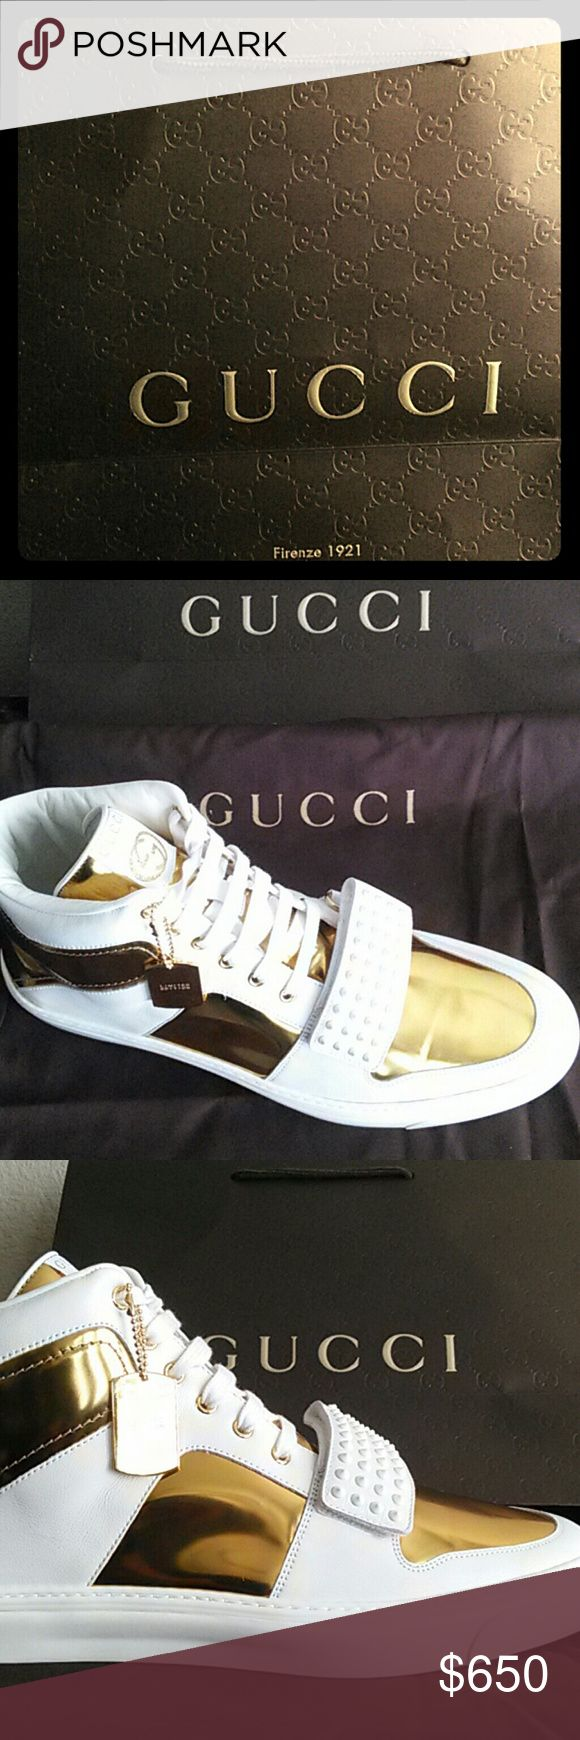 Limited Edition Gold High Top Sneakers by Gucci Authentic High Top Sneakers by Gucci with tags, box, wrapping and never worn. Worth over $800 I've found most are sold out online and in store. I'm looking for a shoe collector or sneaker lover. They run 2 sizes big so if you plan to wear them, you must where a 13/13.5. I chose the bigger shoe so it could be put in a cool display case. Gucci Shoes Sneakers